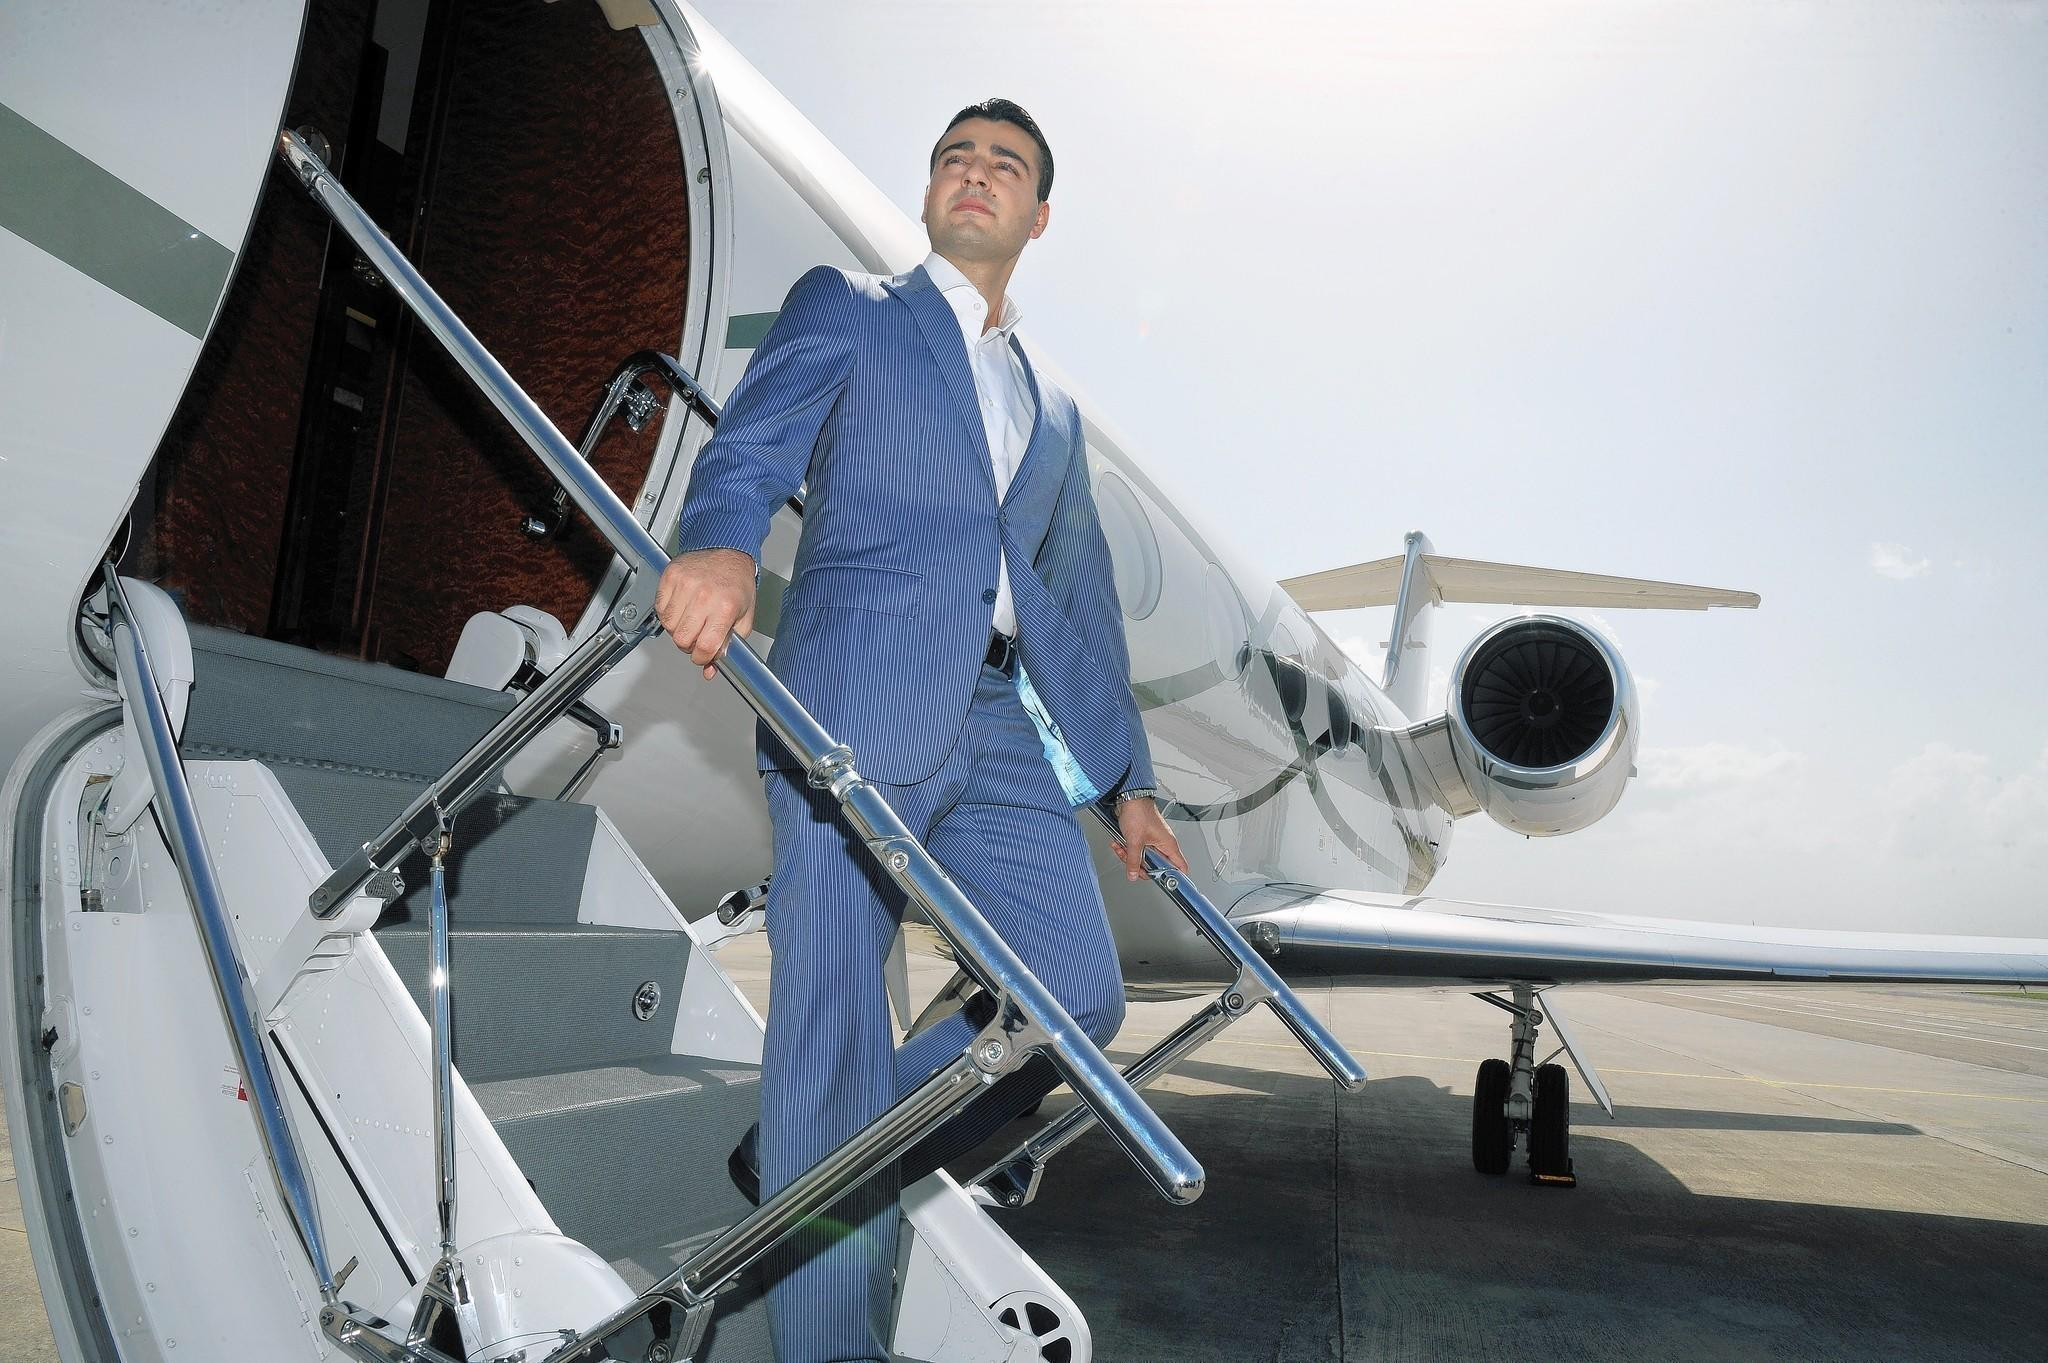 Jetsmarter CEO Sergey Petrossov says his firm has partnerships with 800 vendors with 3,200 airplanes worldwide.